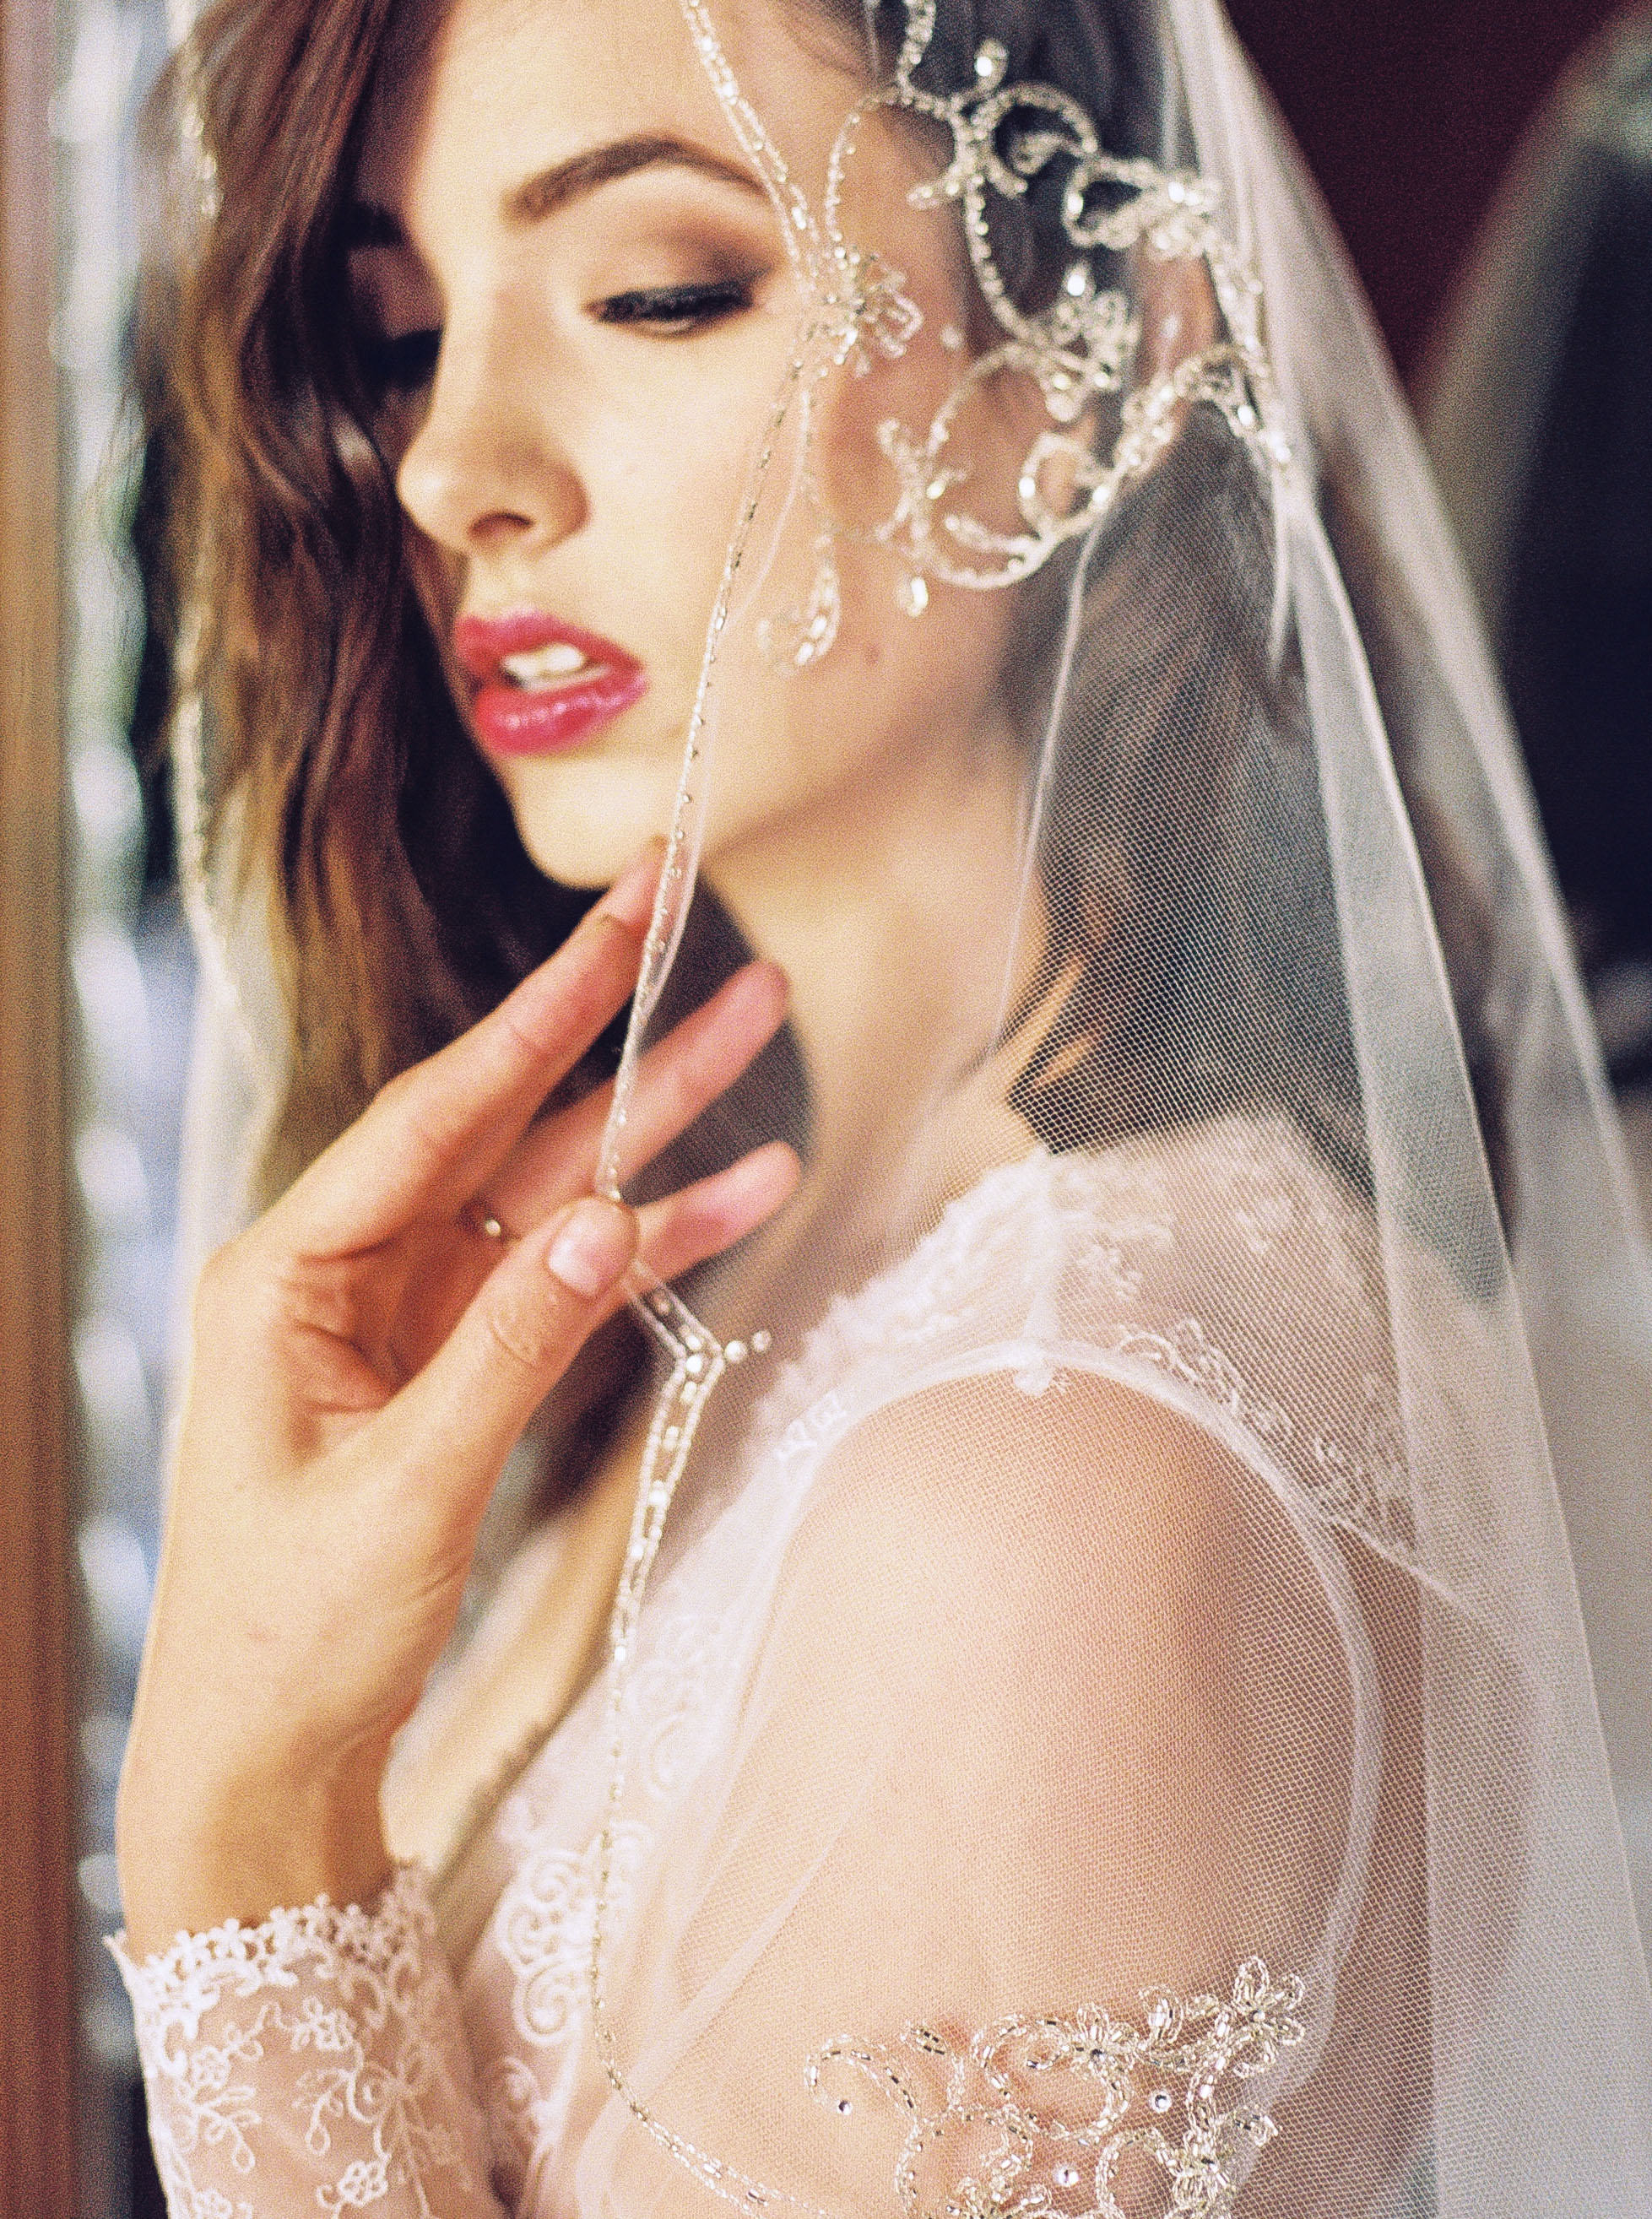 Orange County LA Wedding bridal makeup aritst hairstylist hikari lara lam